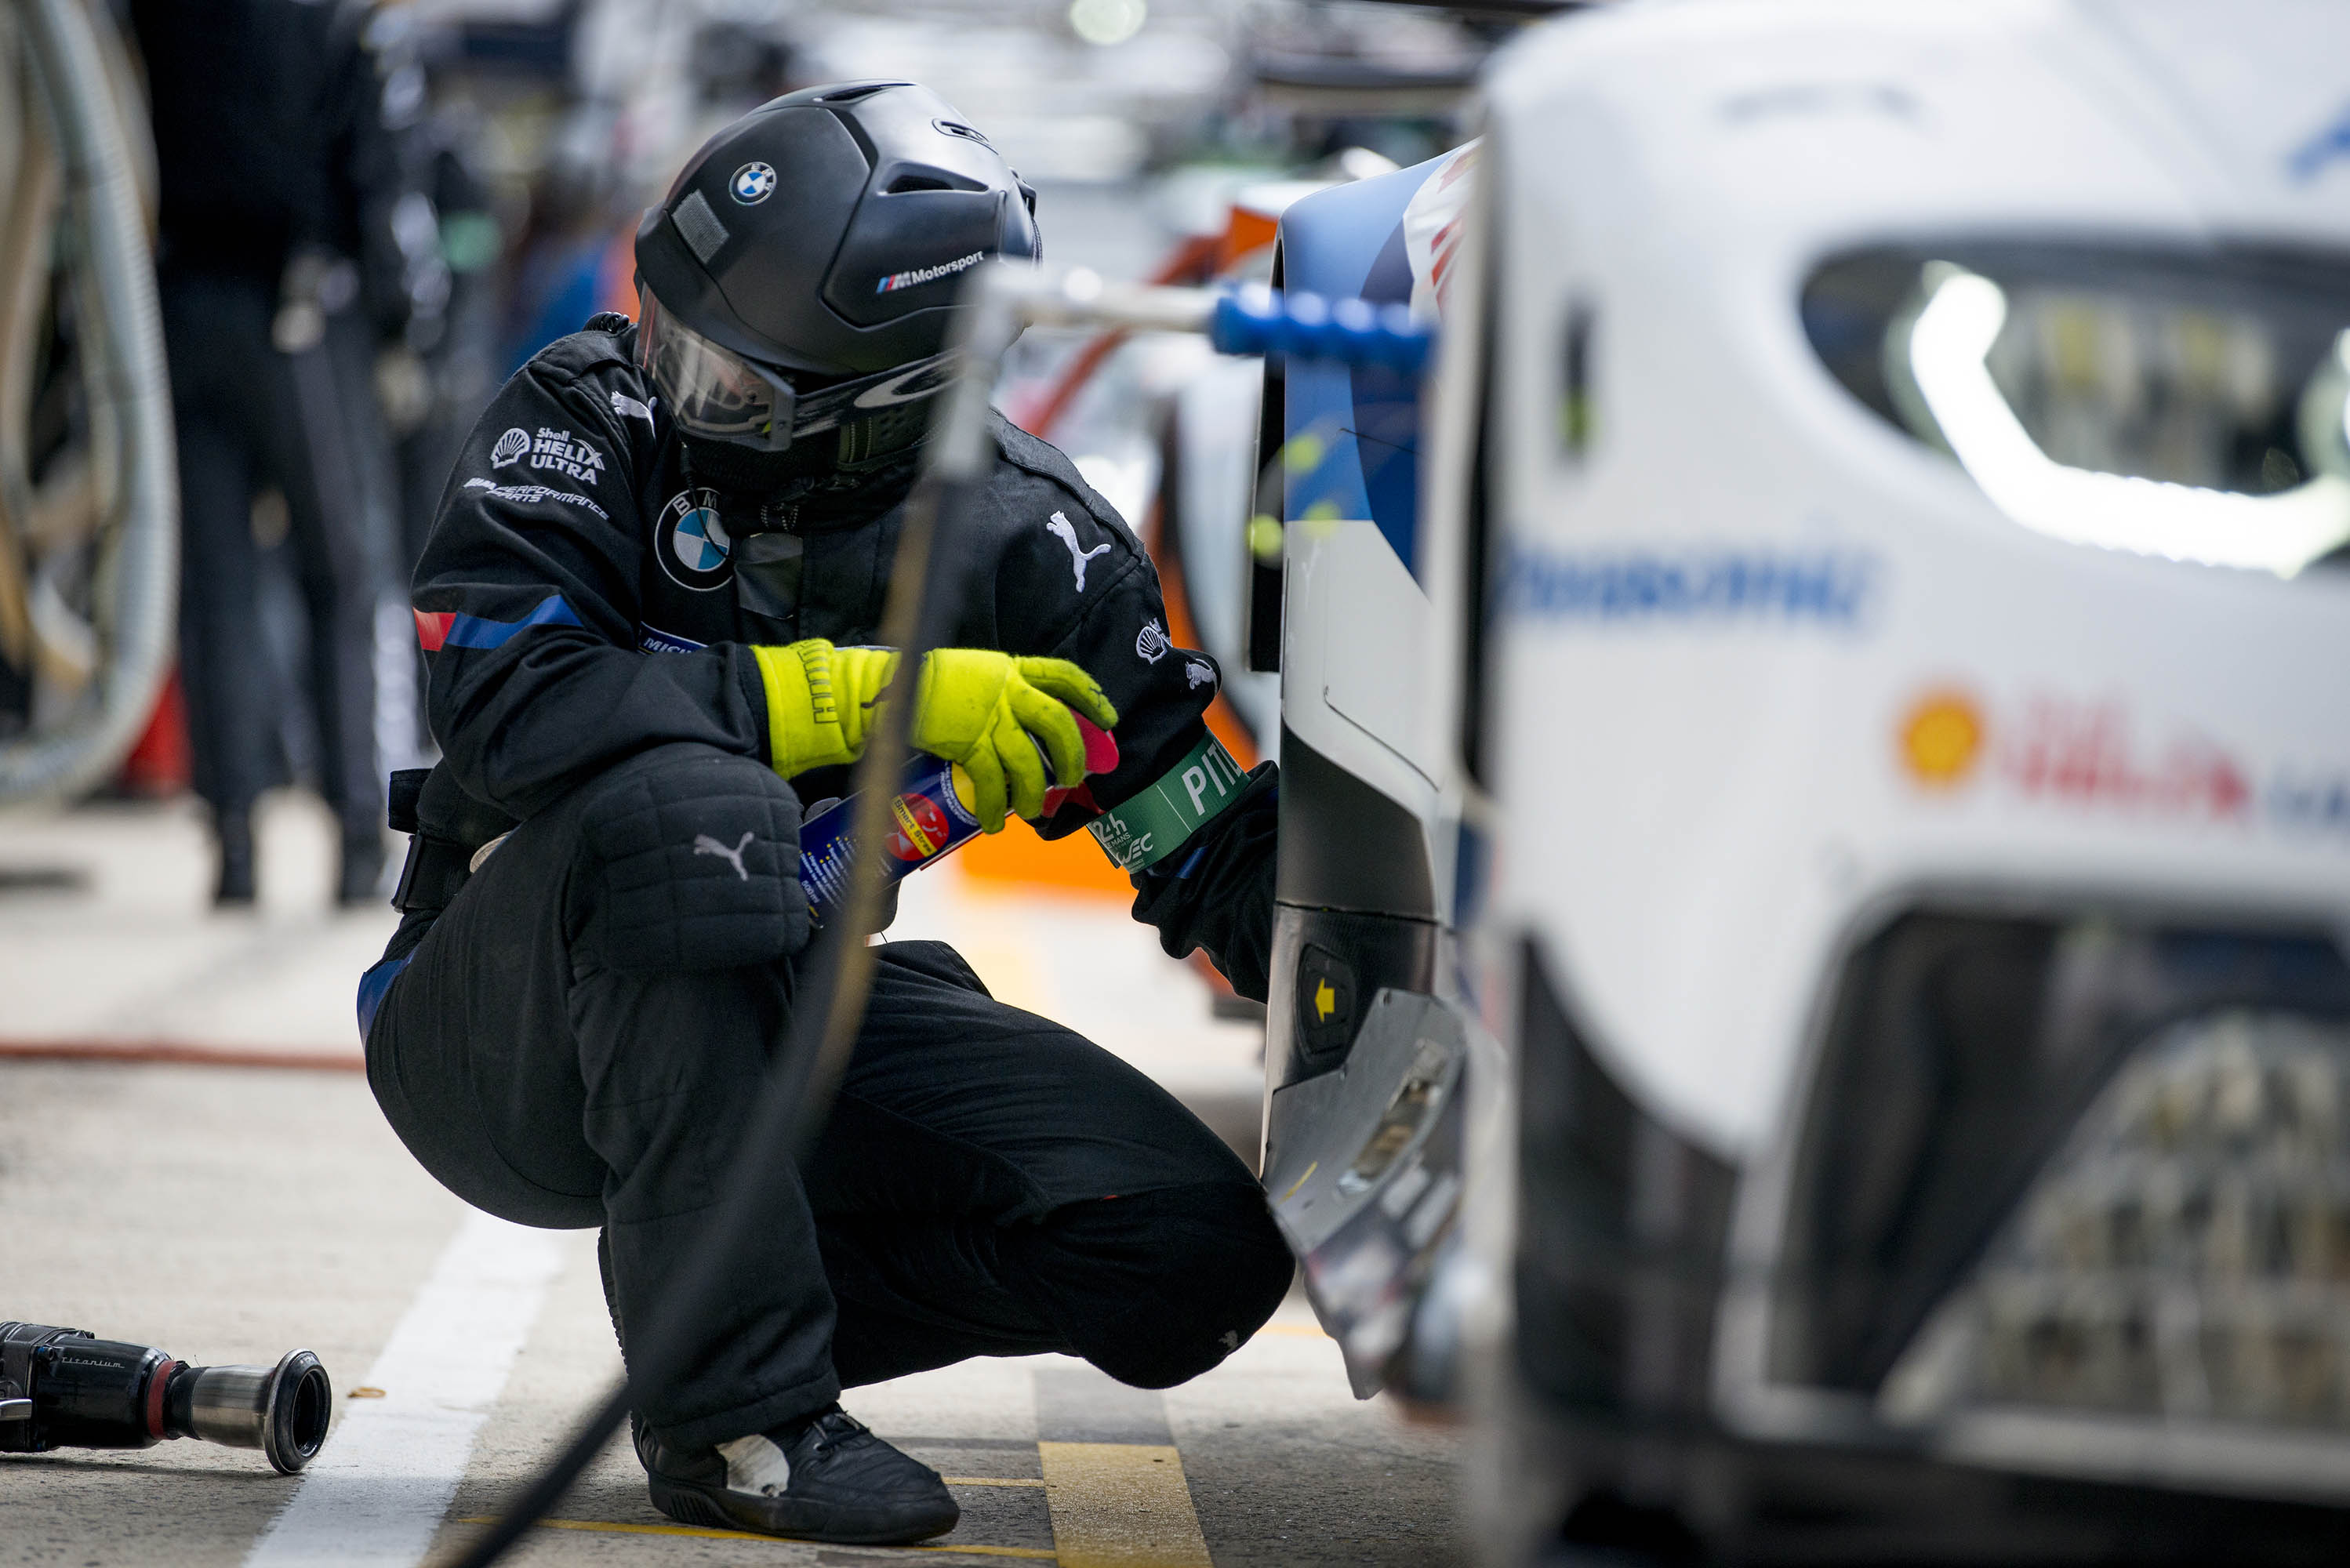 MRS_BMW_LeMans2019_02007